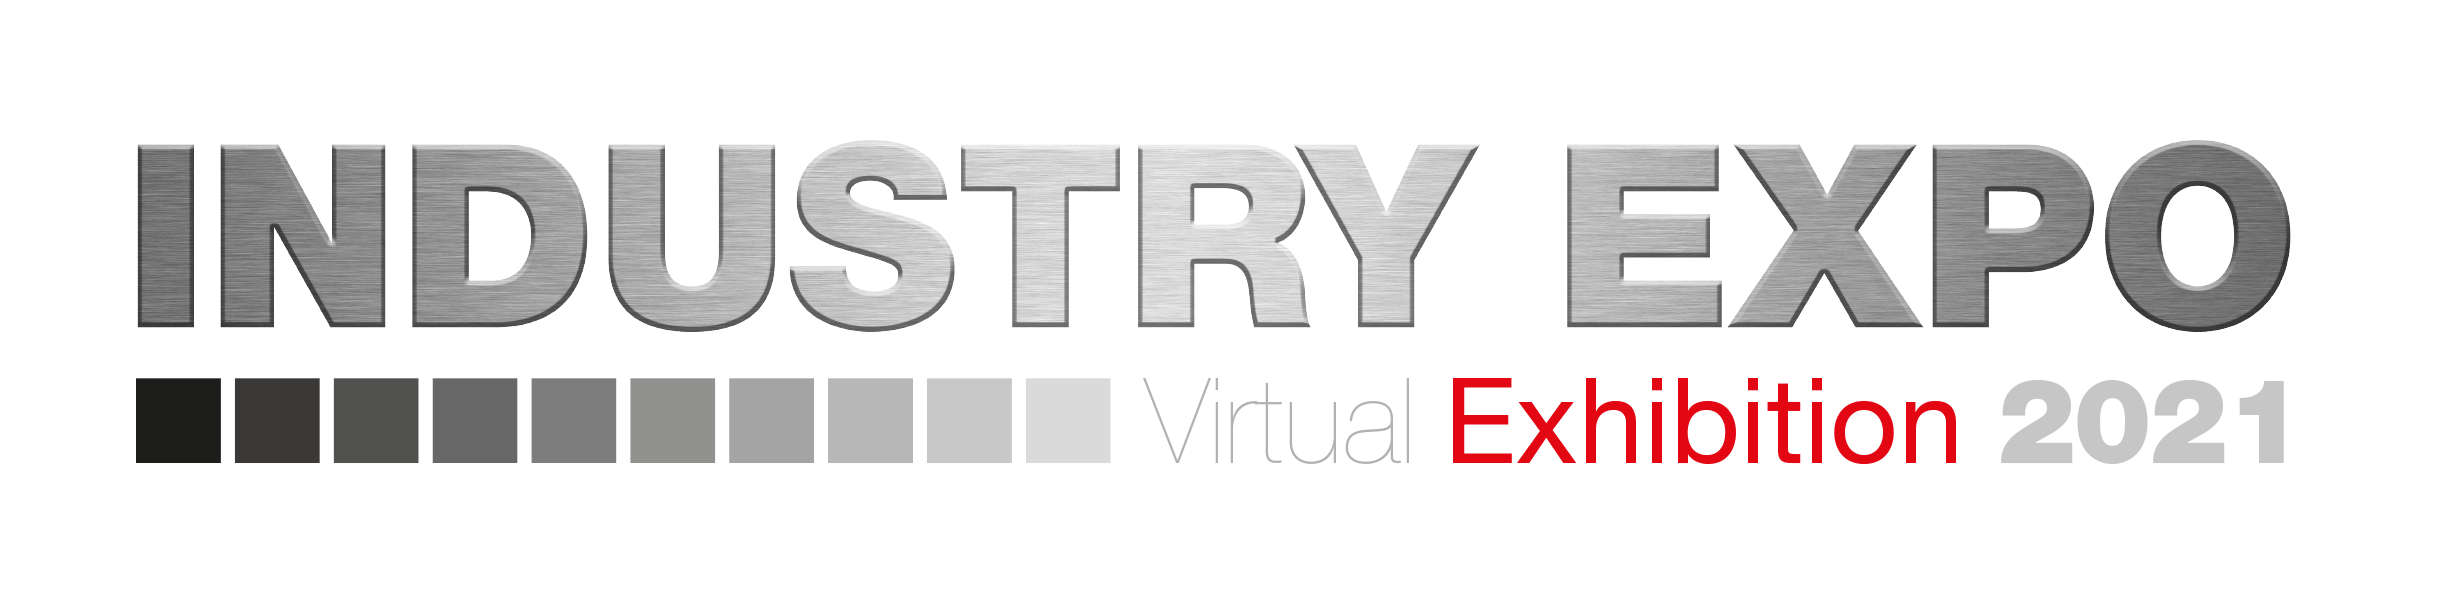 Industry Expo Virtual Exhibition